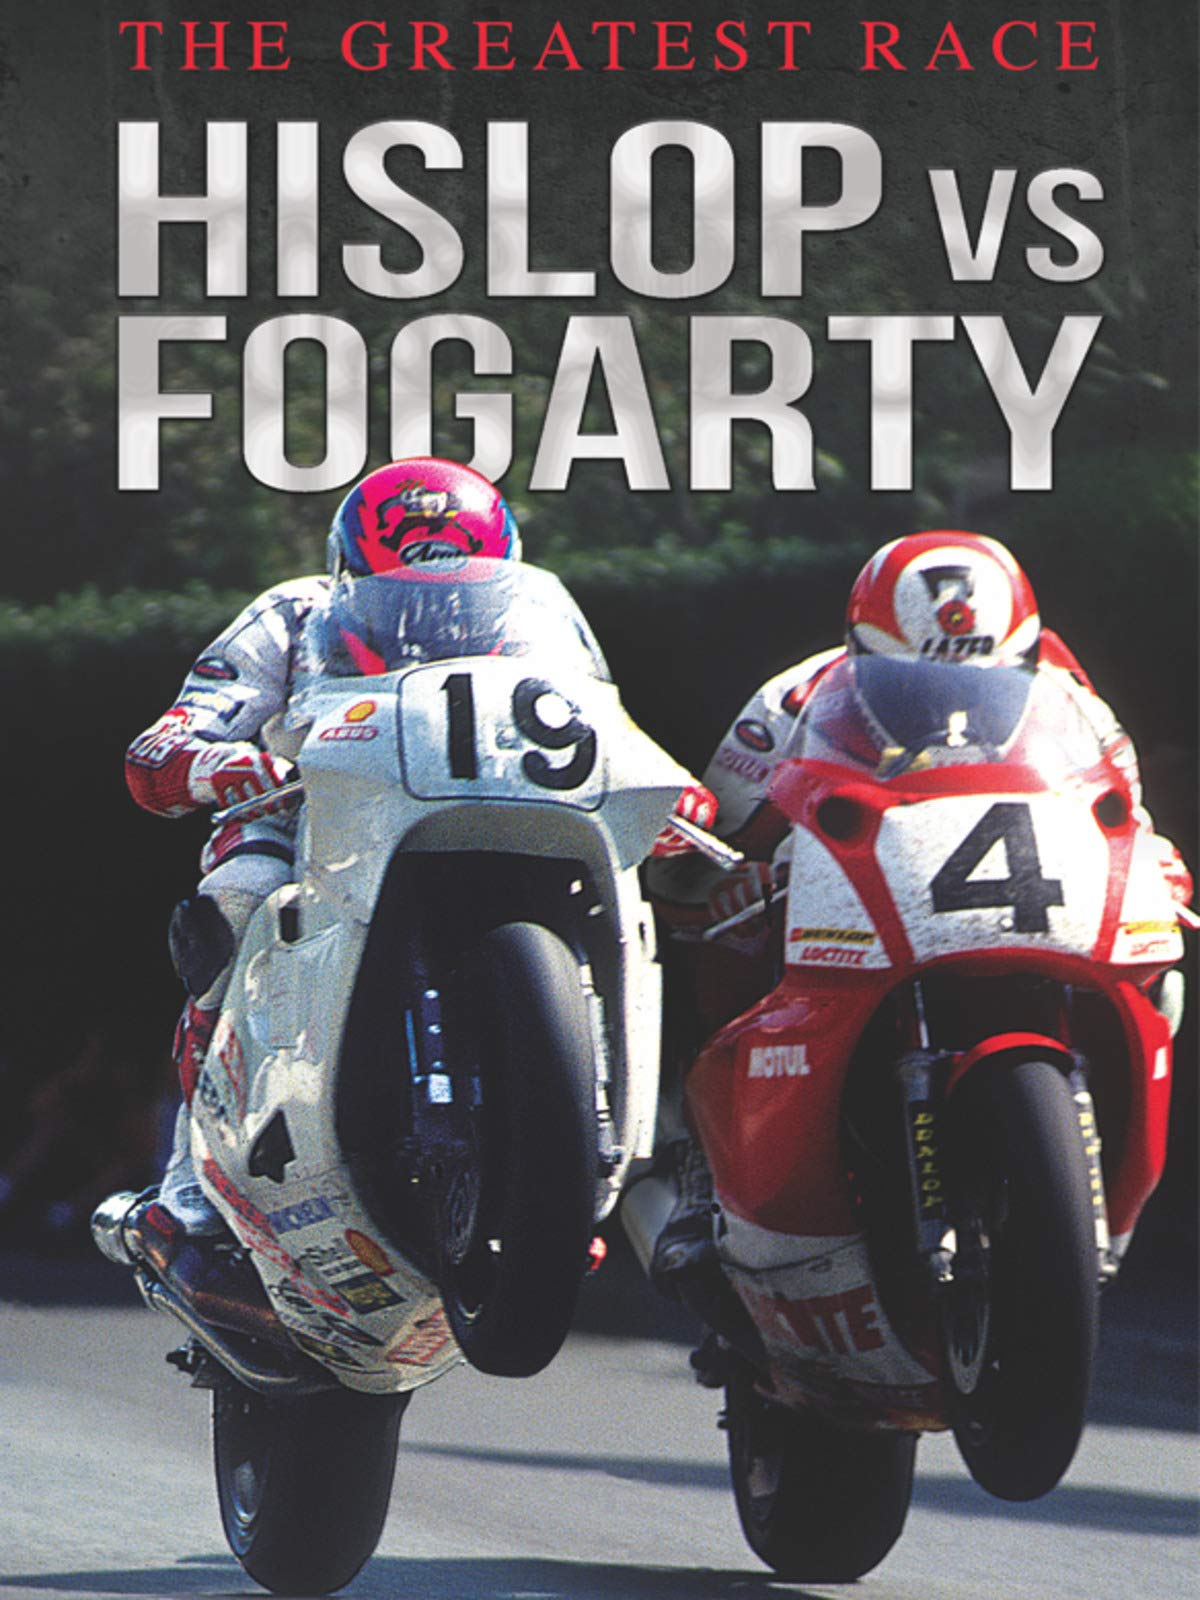 The Greatest Race - Hislop v Fogarty